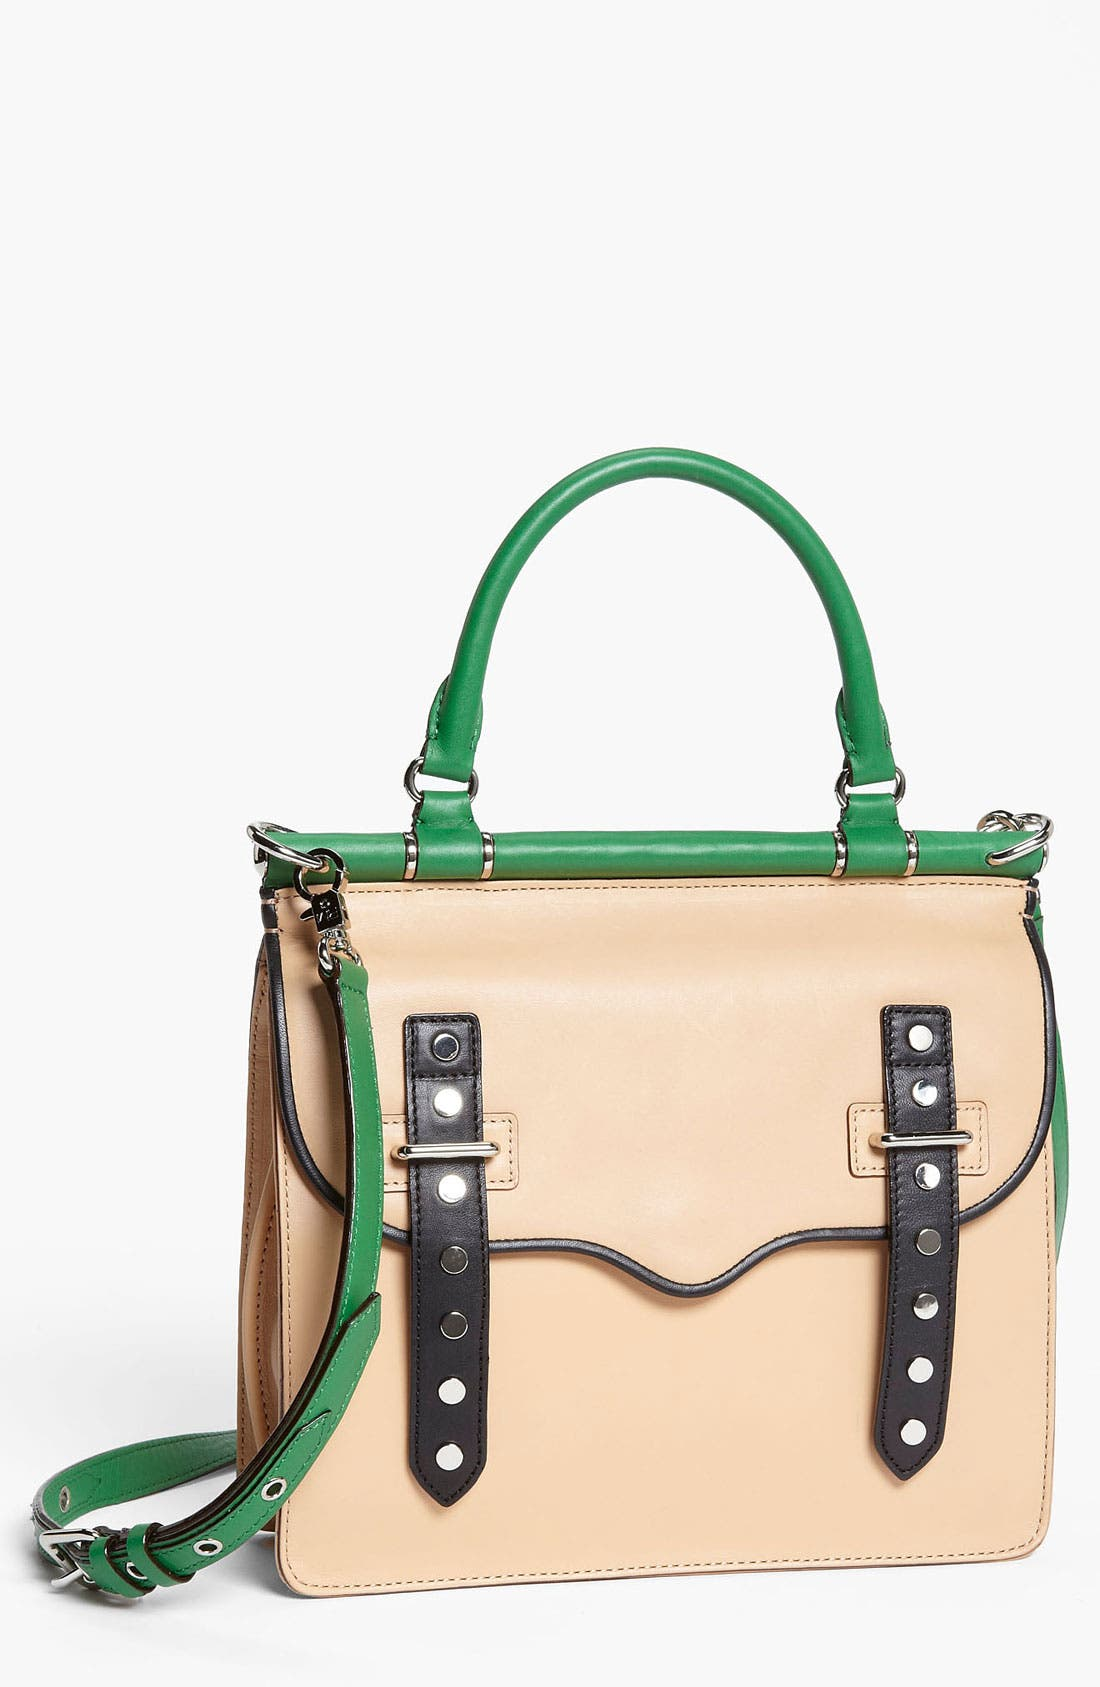 Alternate Image 1 Selected - Rebecca Minkoff 'Brett' Colorblock Satchel